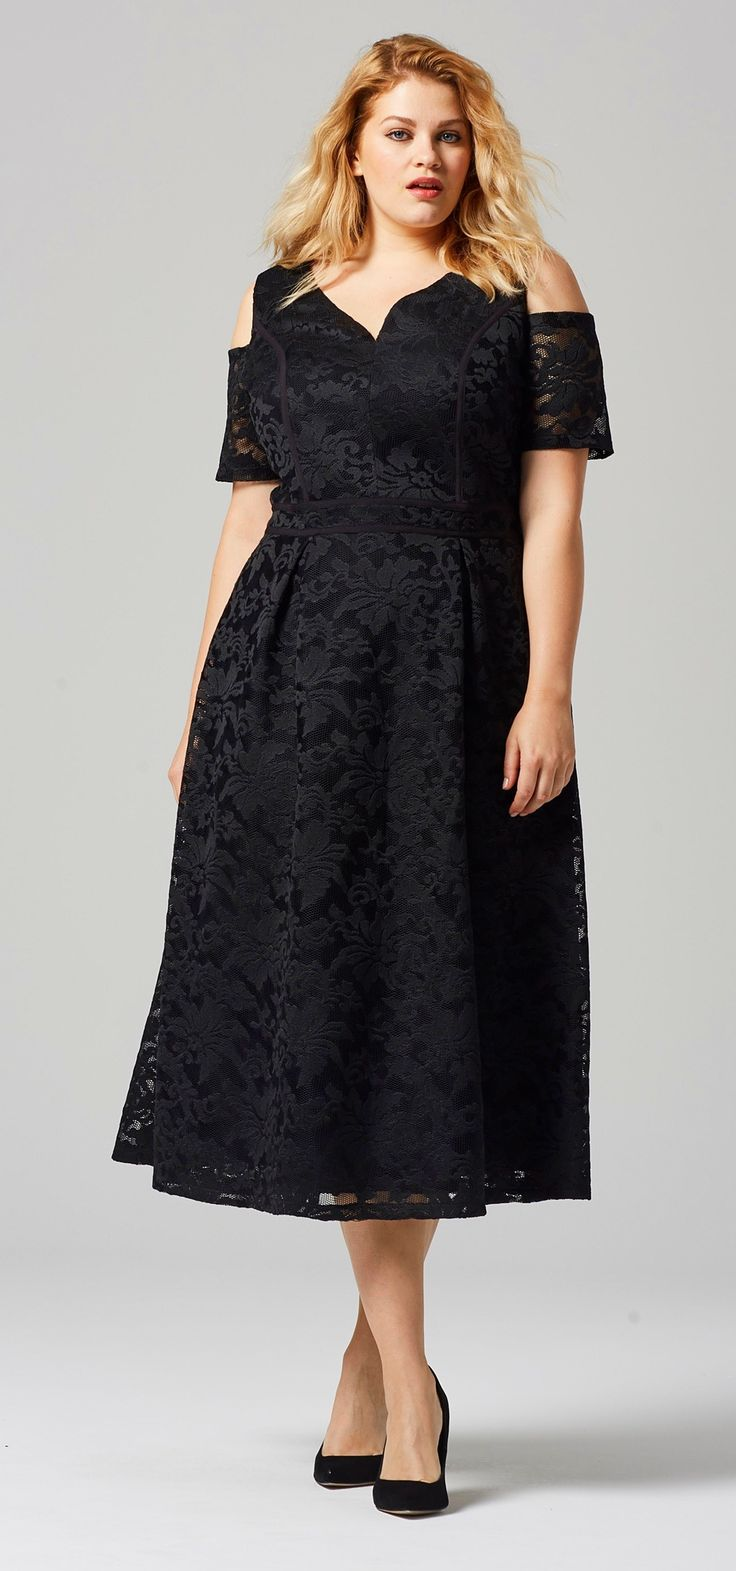 Black dress guest wedding - 45 Plus Size Wedding Guest Dresses With Sleeves